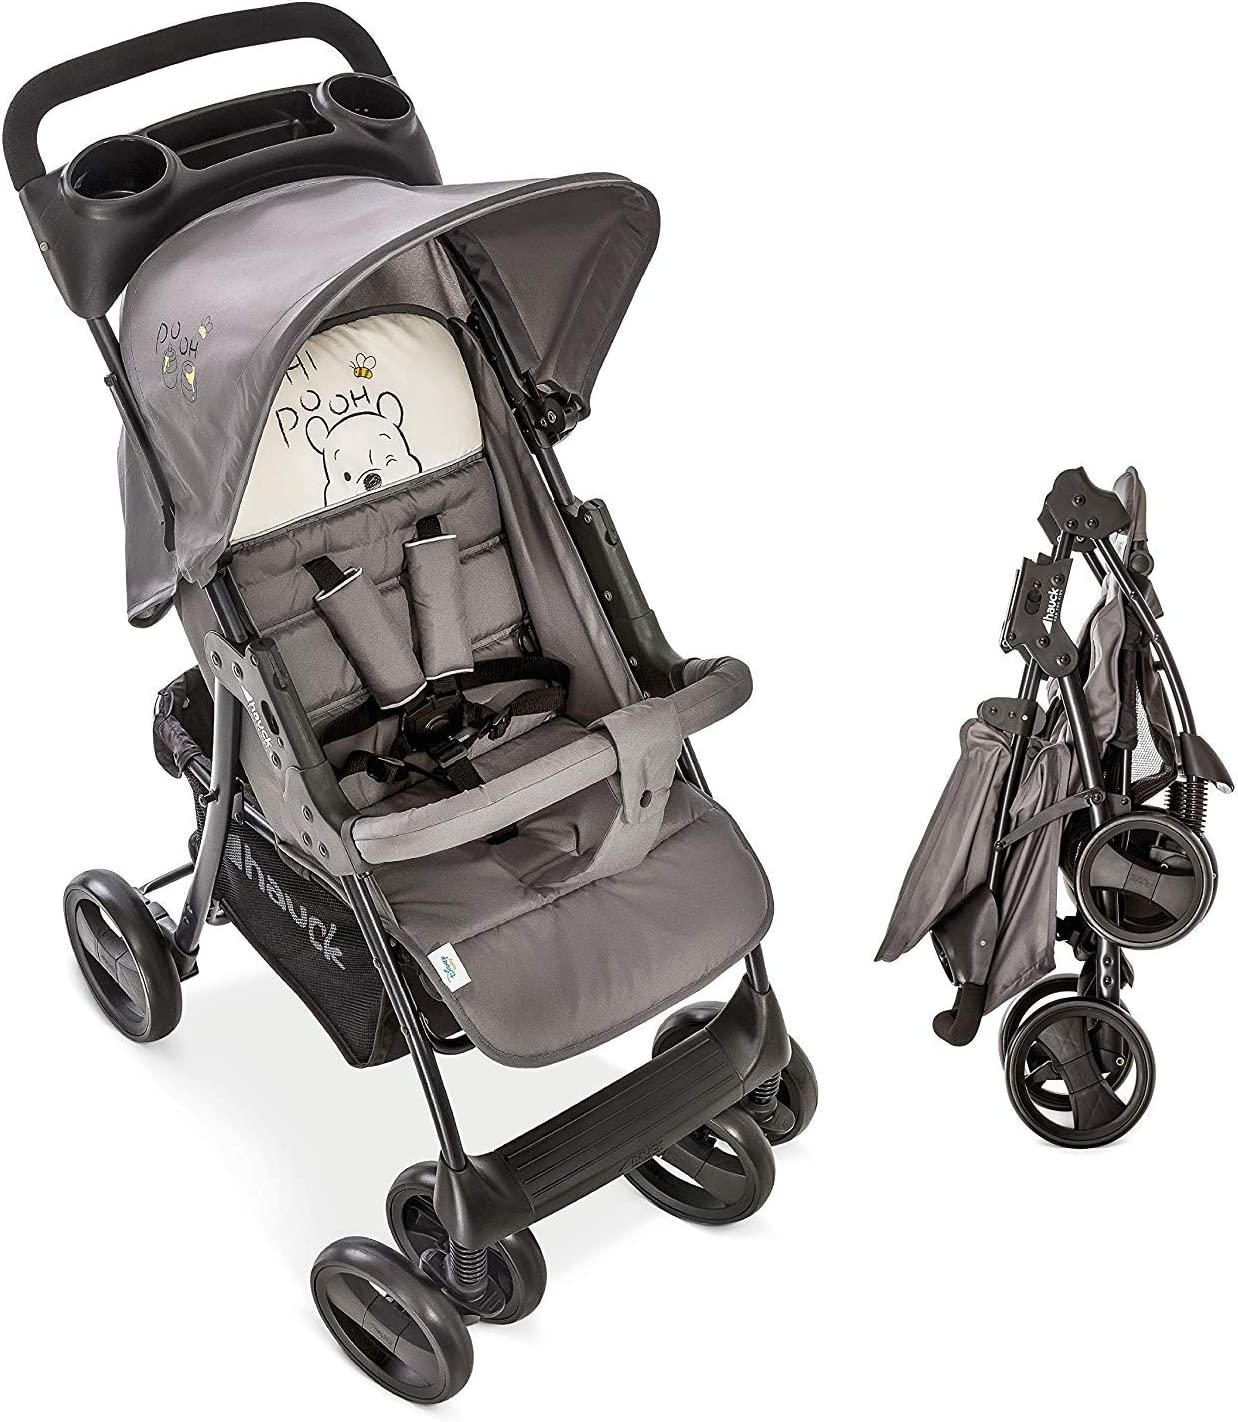 NEW HAUCK DISNEY POOH TIDY TIME SPEED PLUS PUSHCHAIR BABY STROLLER /& RAIN COVER